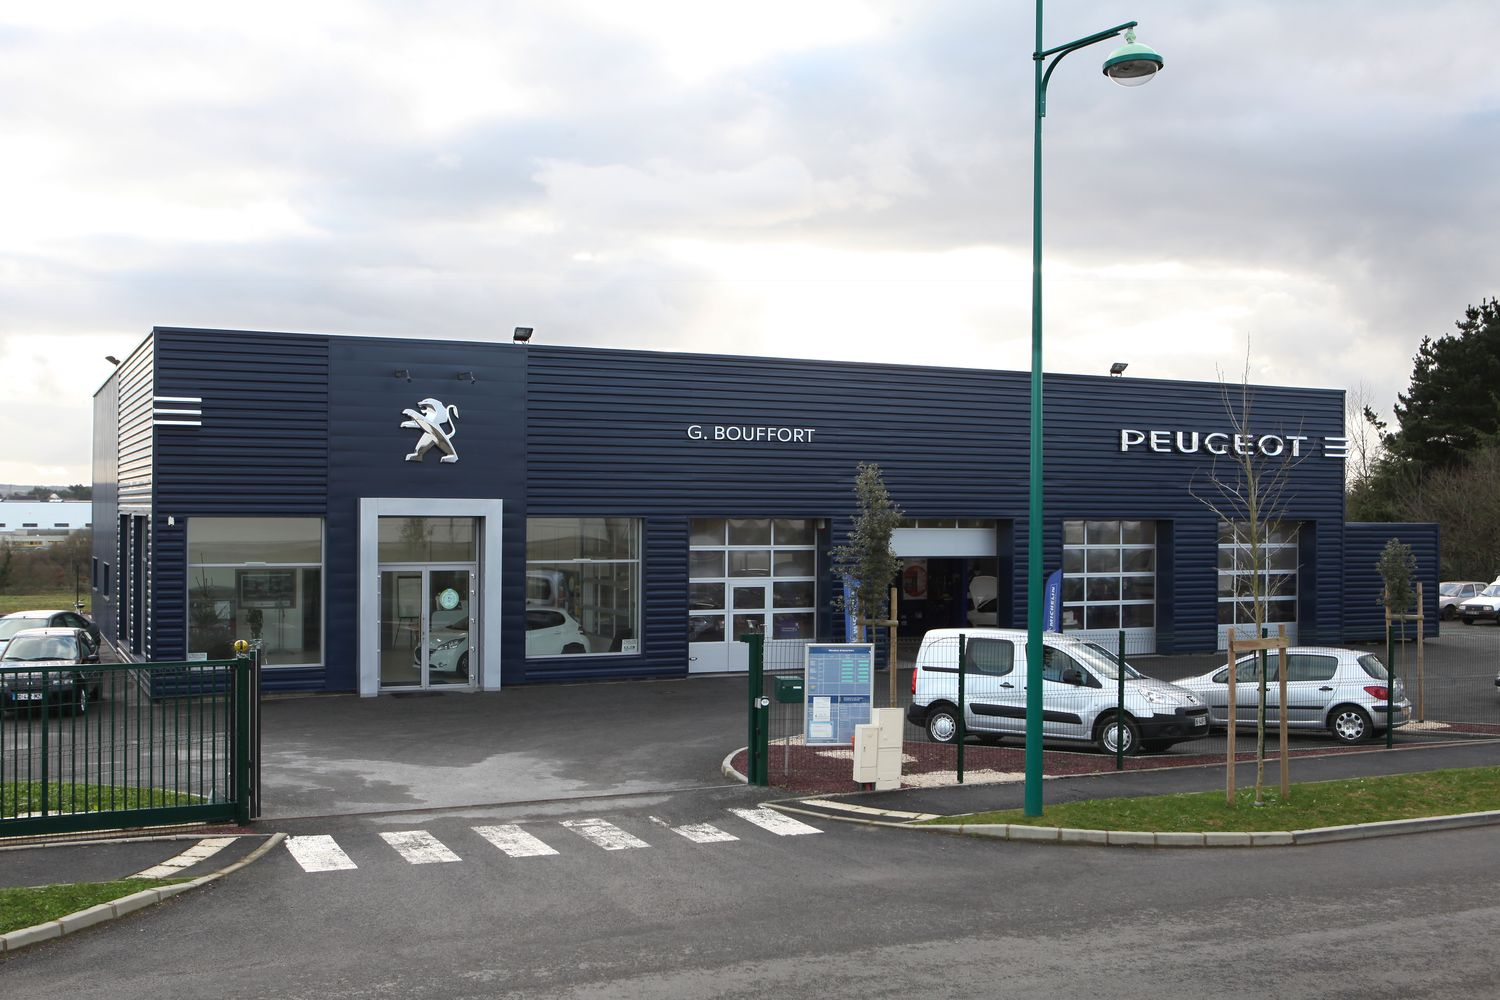 Ace ing nierie abc contractant r alisations peugeot for Garage peugeot paris 17